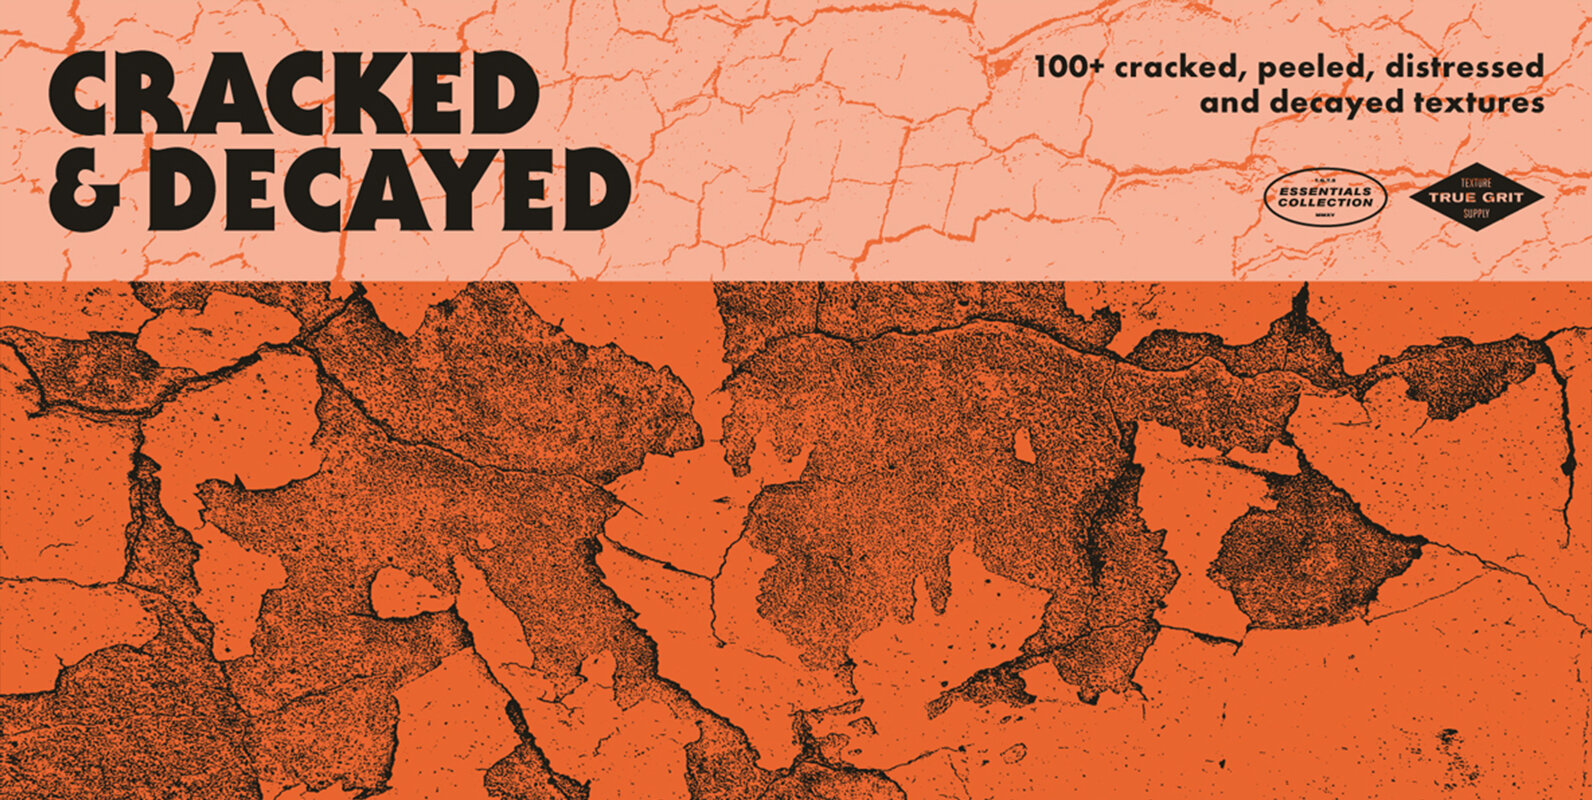 Cracked And Decayed Textures